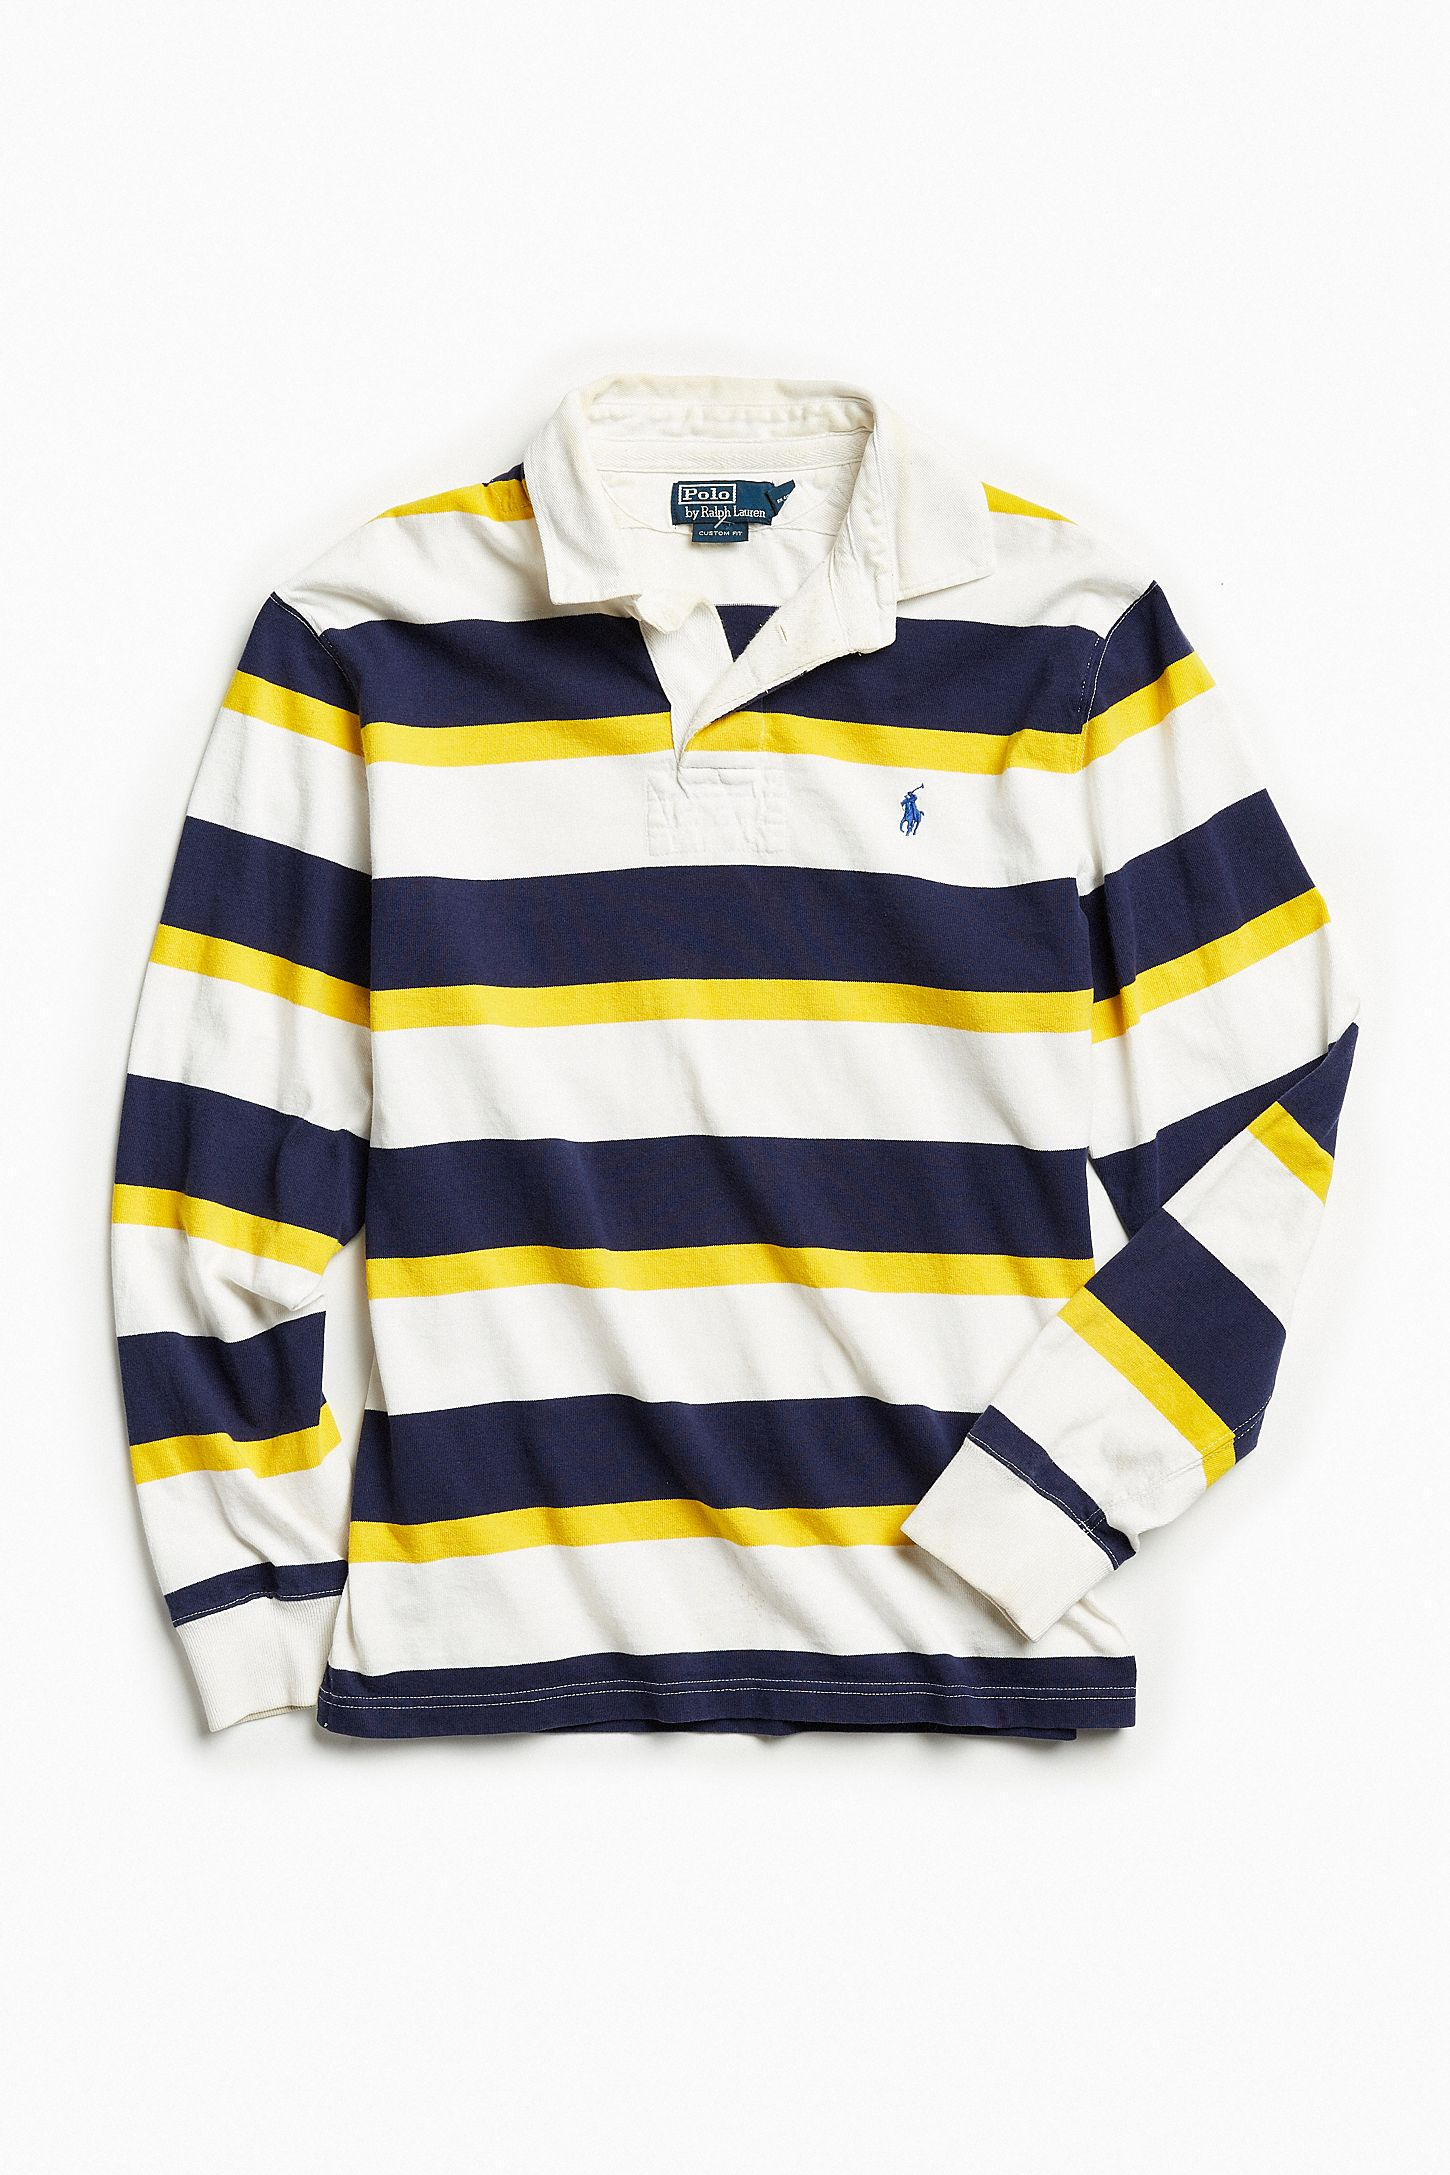 79b0563cbcb Vintage Polo Ralph Lauren White + Navy Stripe Rugby Shirt. Tap image to  zoom. Hover to zoom. Double Tap to Zoom